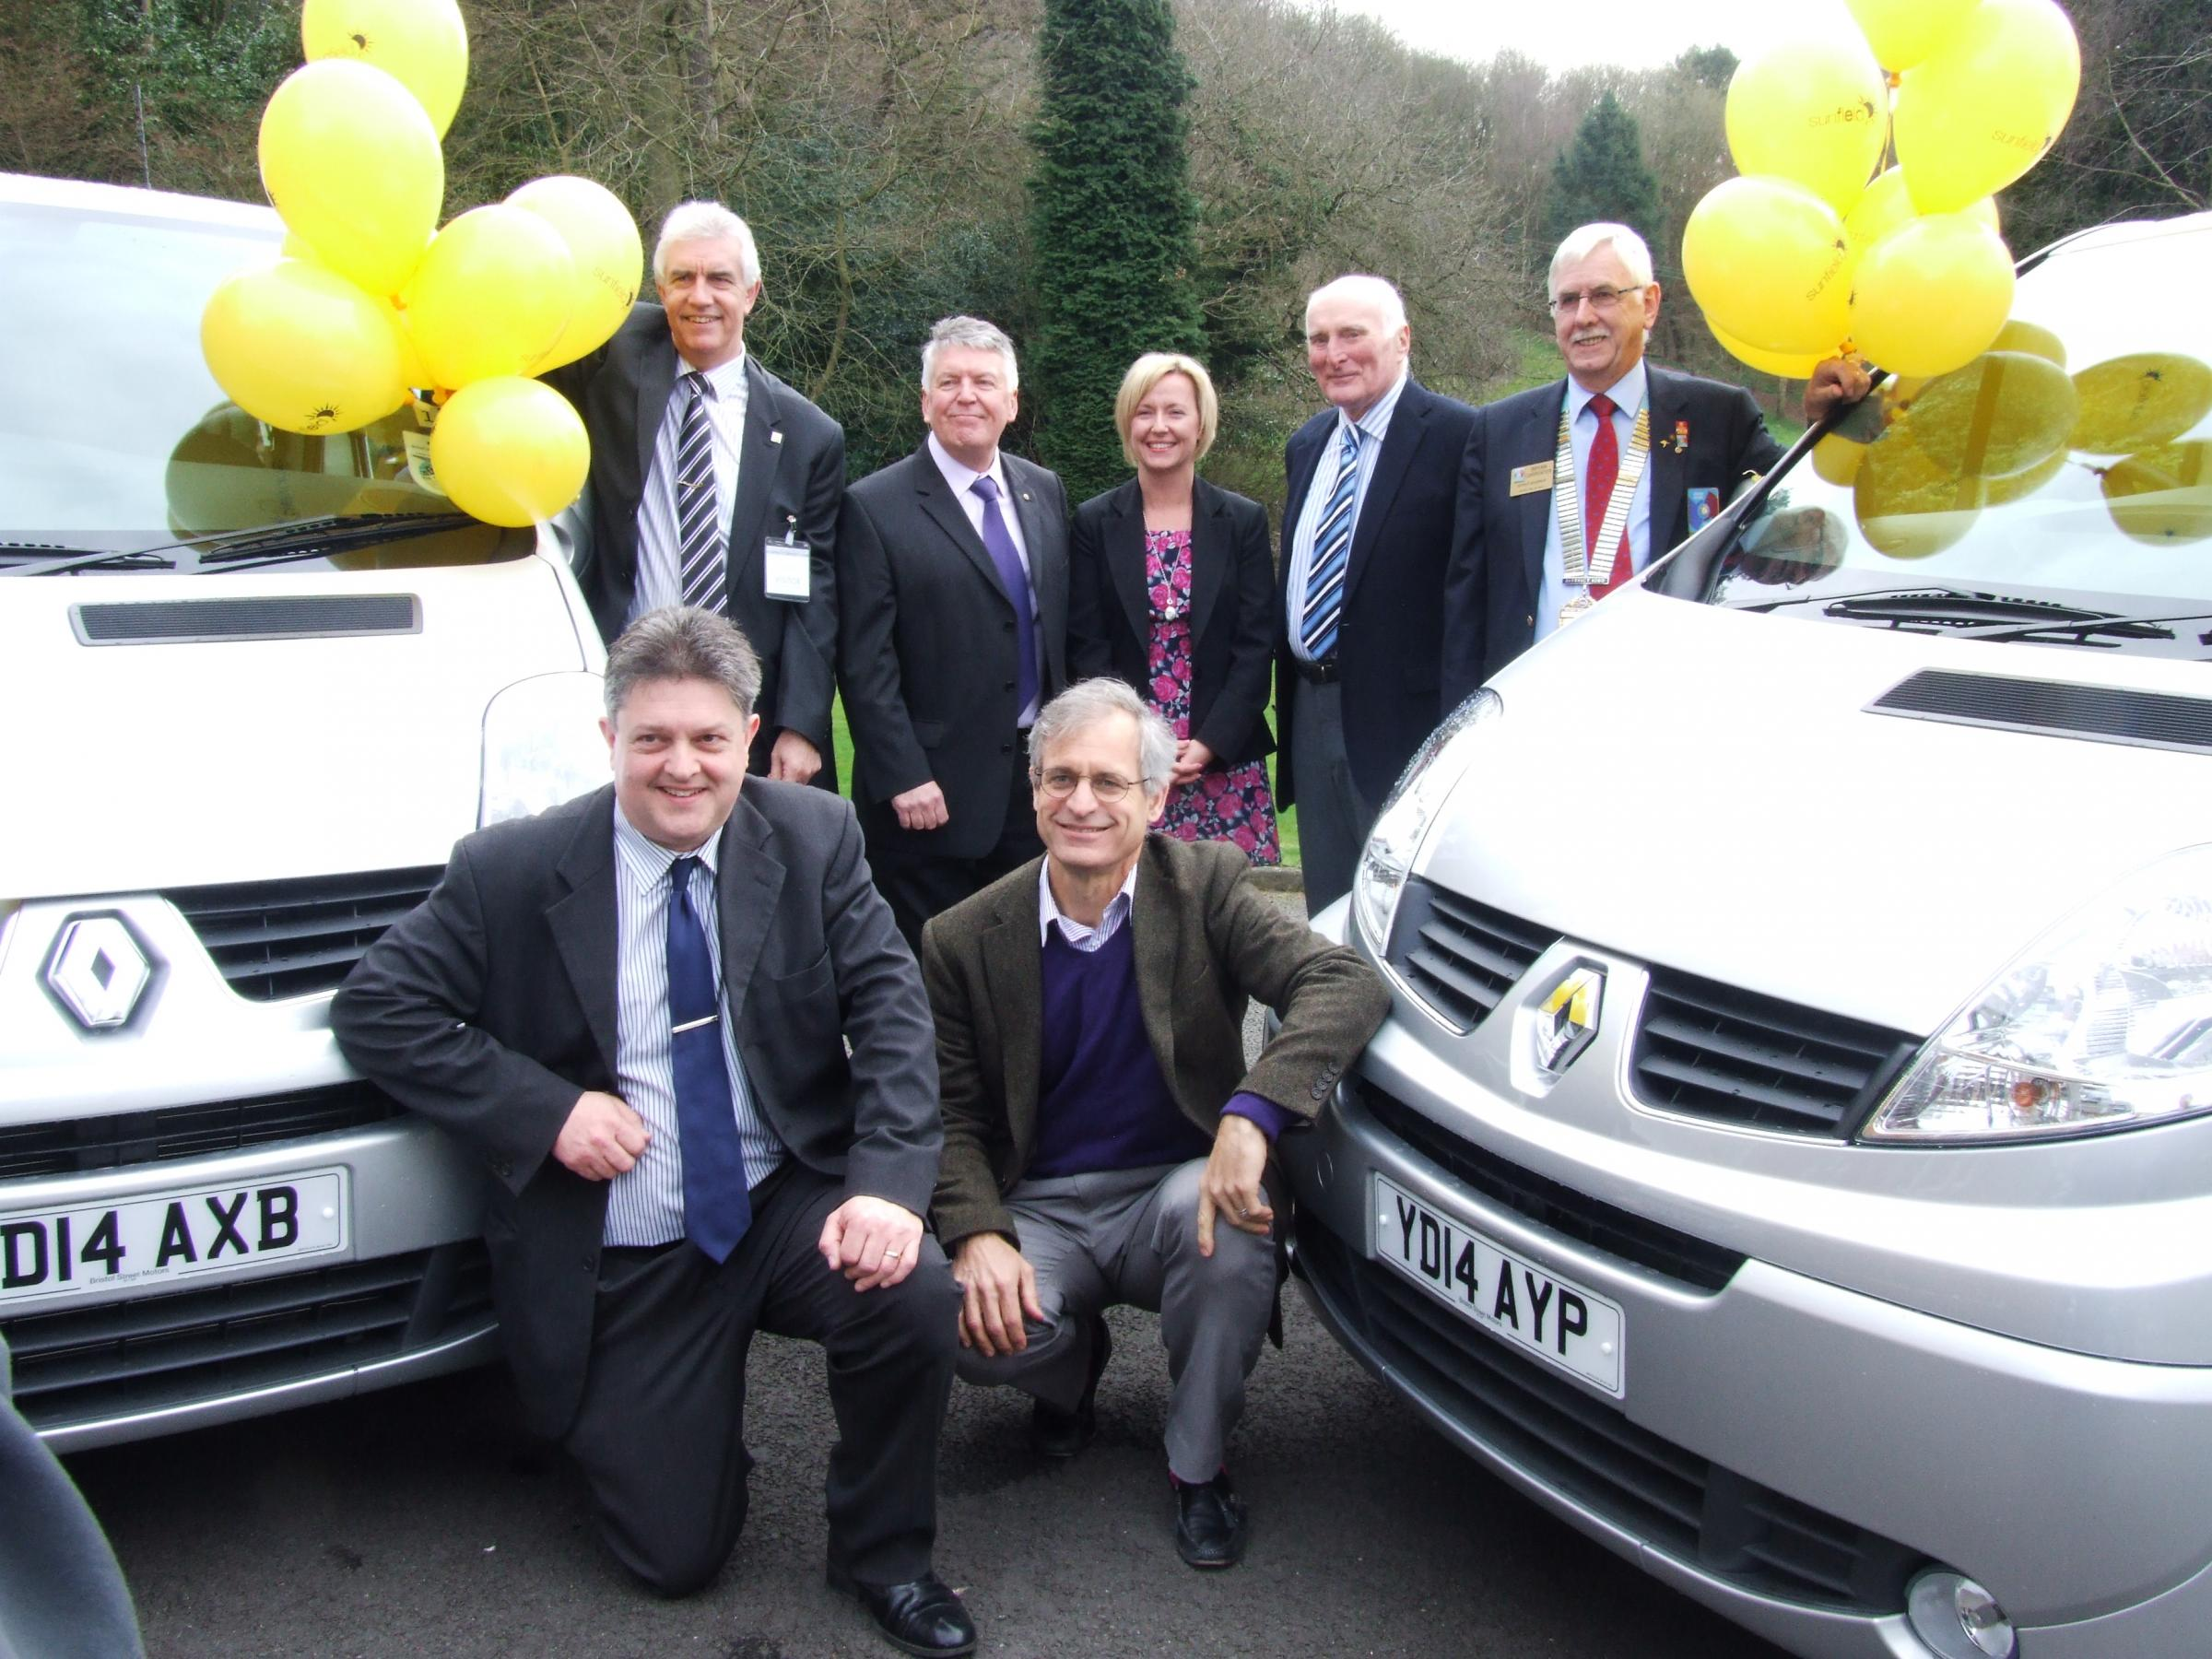 Front l-r - Sunfield's Ian Jones and CEO Michael Frosch; back l-r - Steven Jones (Halesowen & Rowley Regis Rotary), Alan Bowler (Rotary), Theresa Gregory (